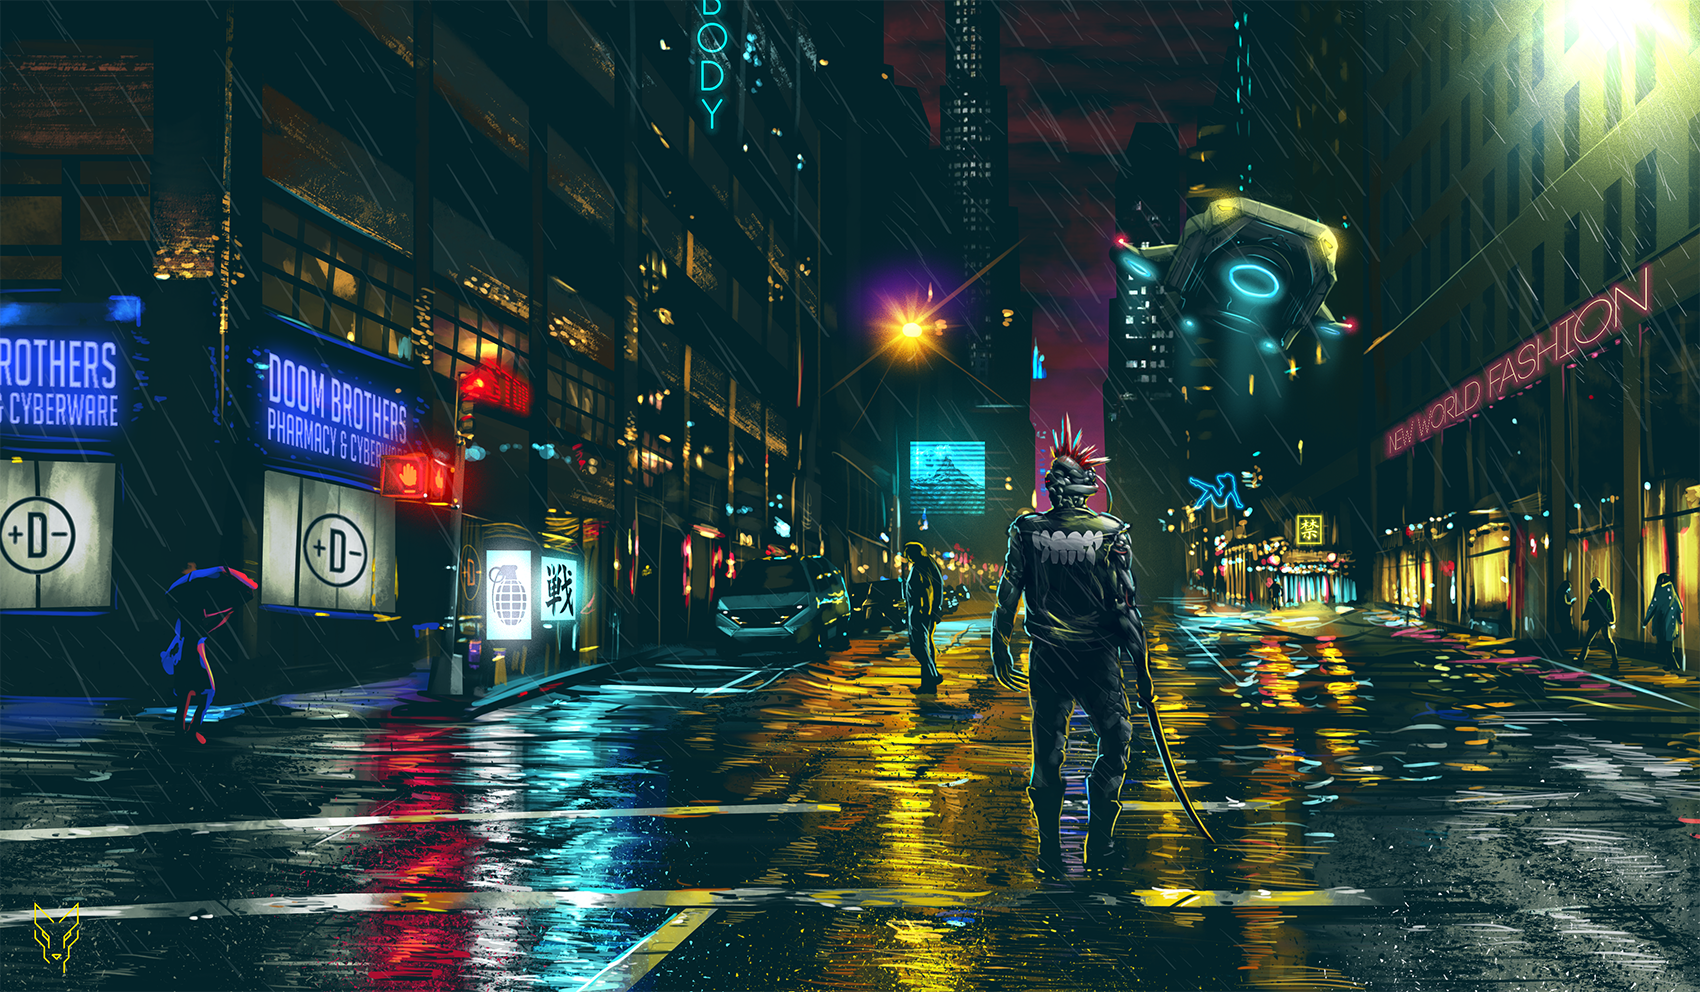 Cyberpunk Wallpaper 2 Album On Imgur Cyberpunk City Cityscape Futuristic City